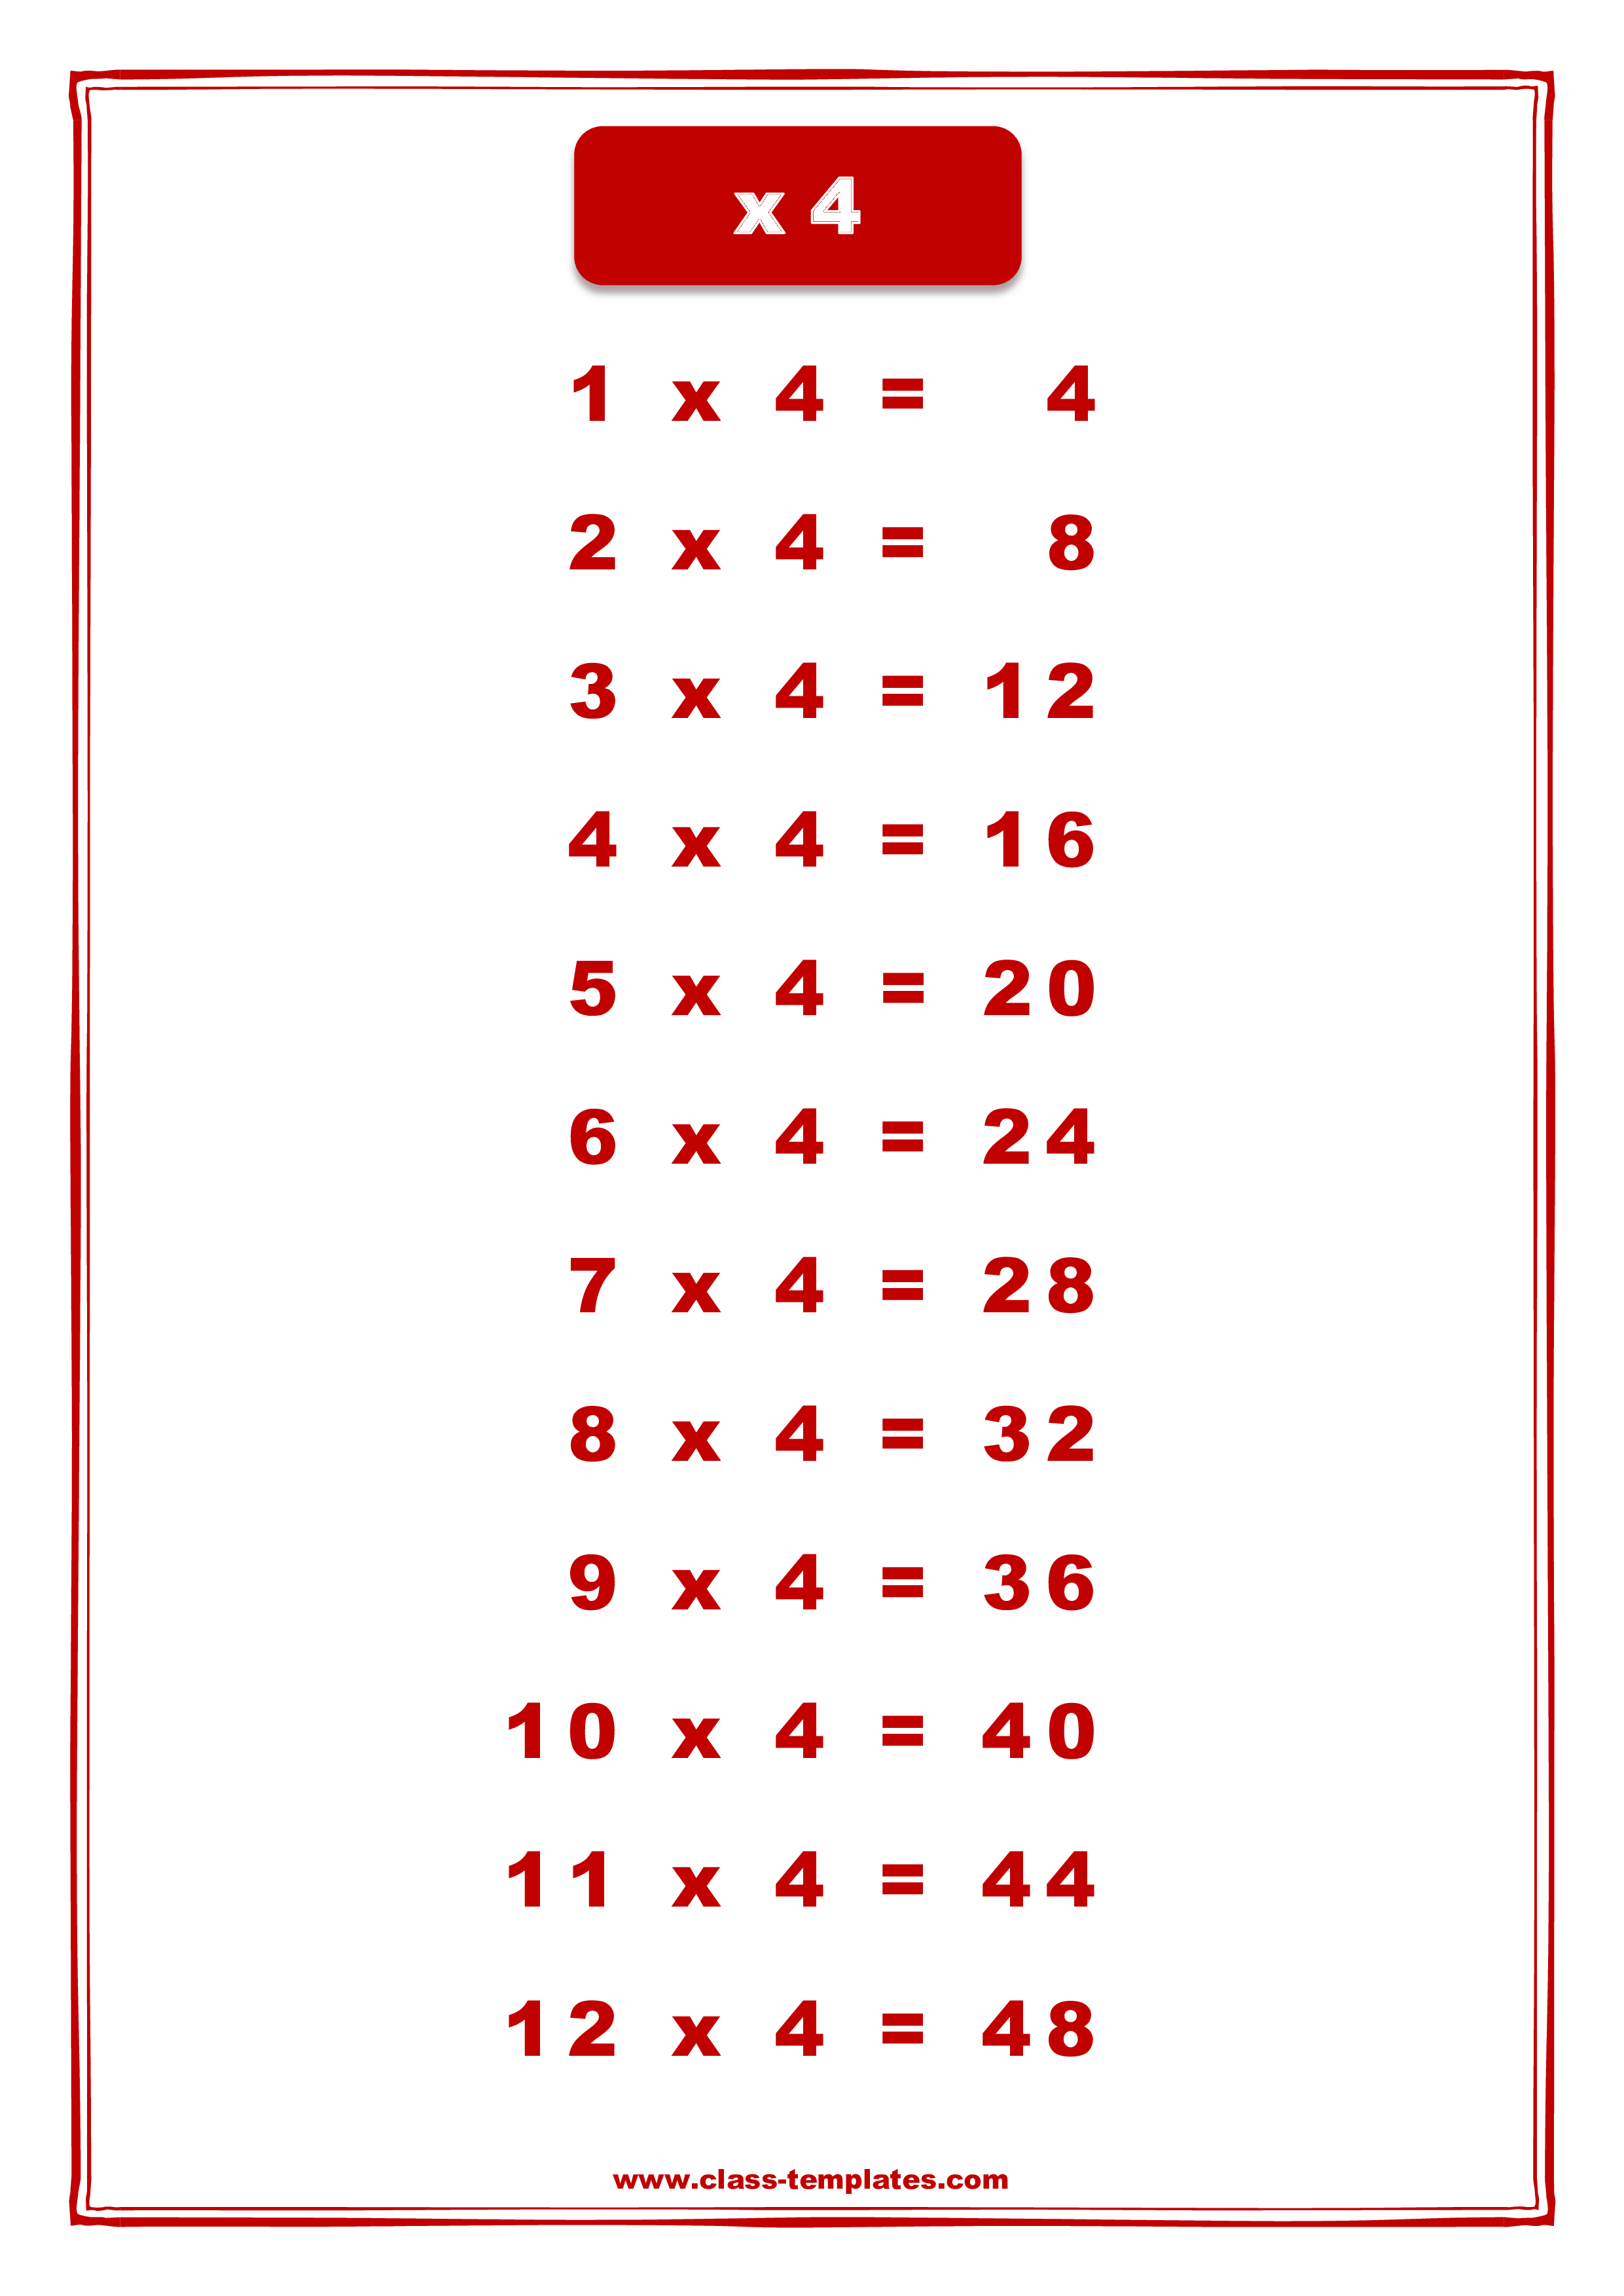 X4 Times Table Chart